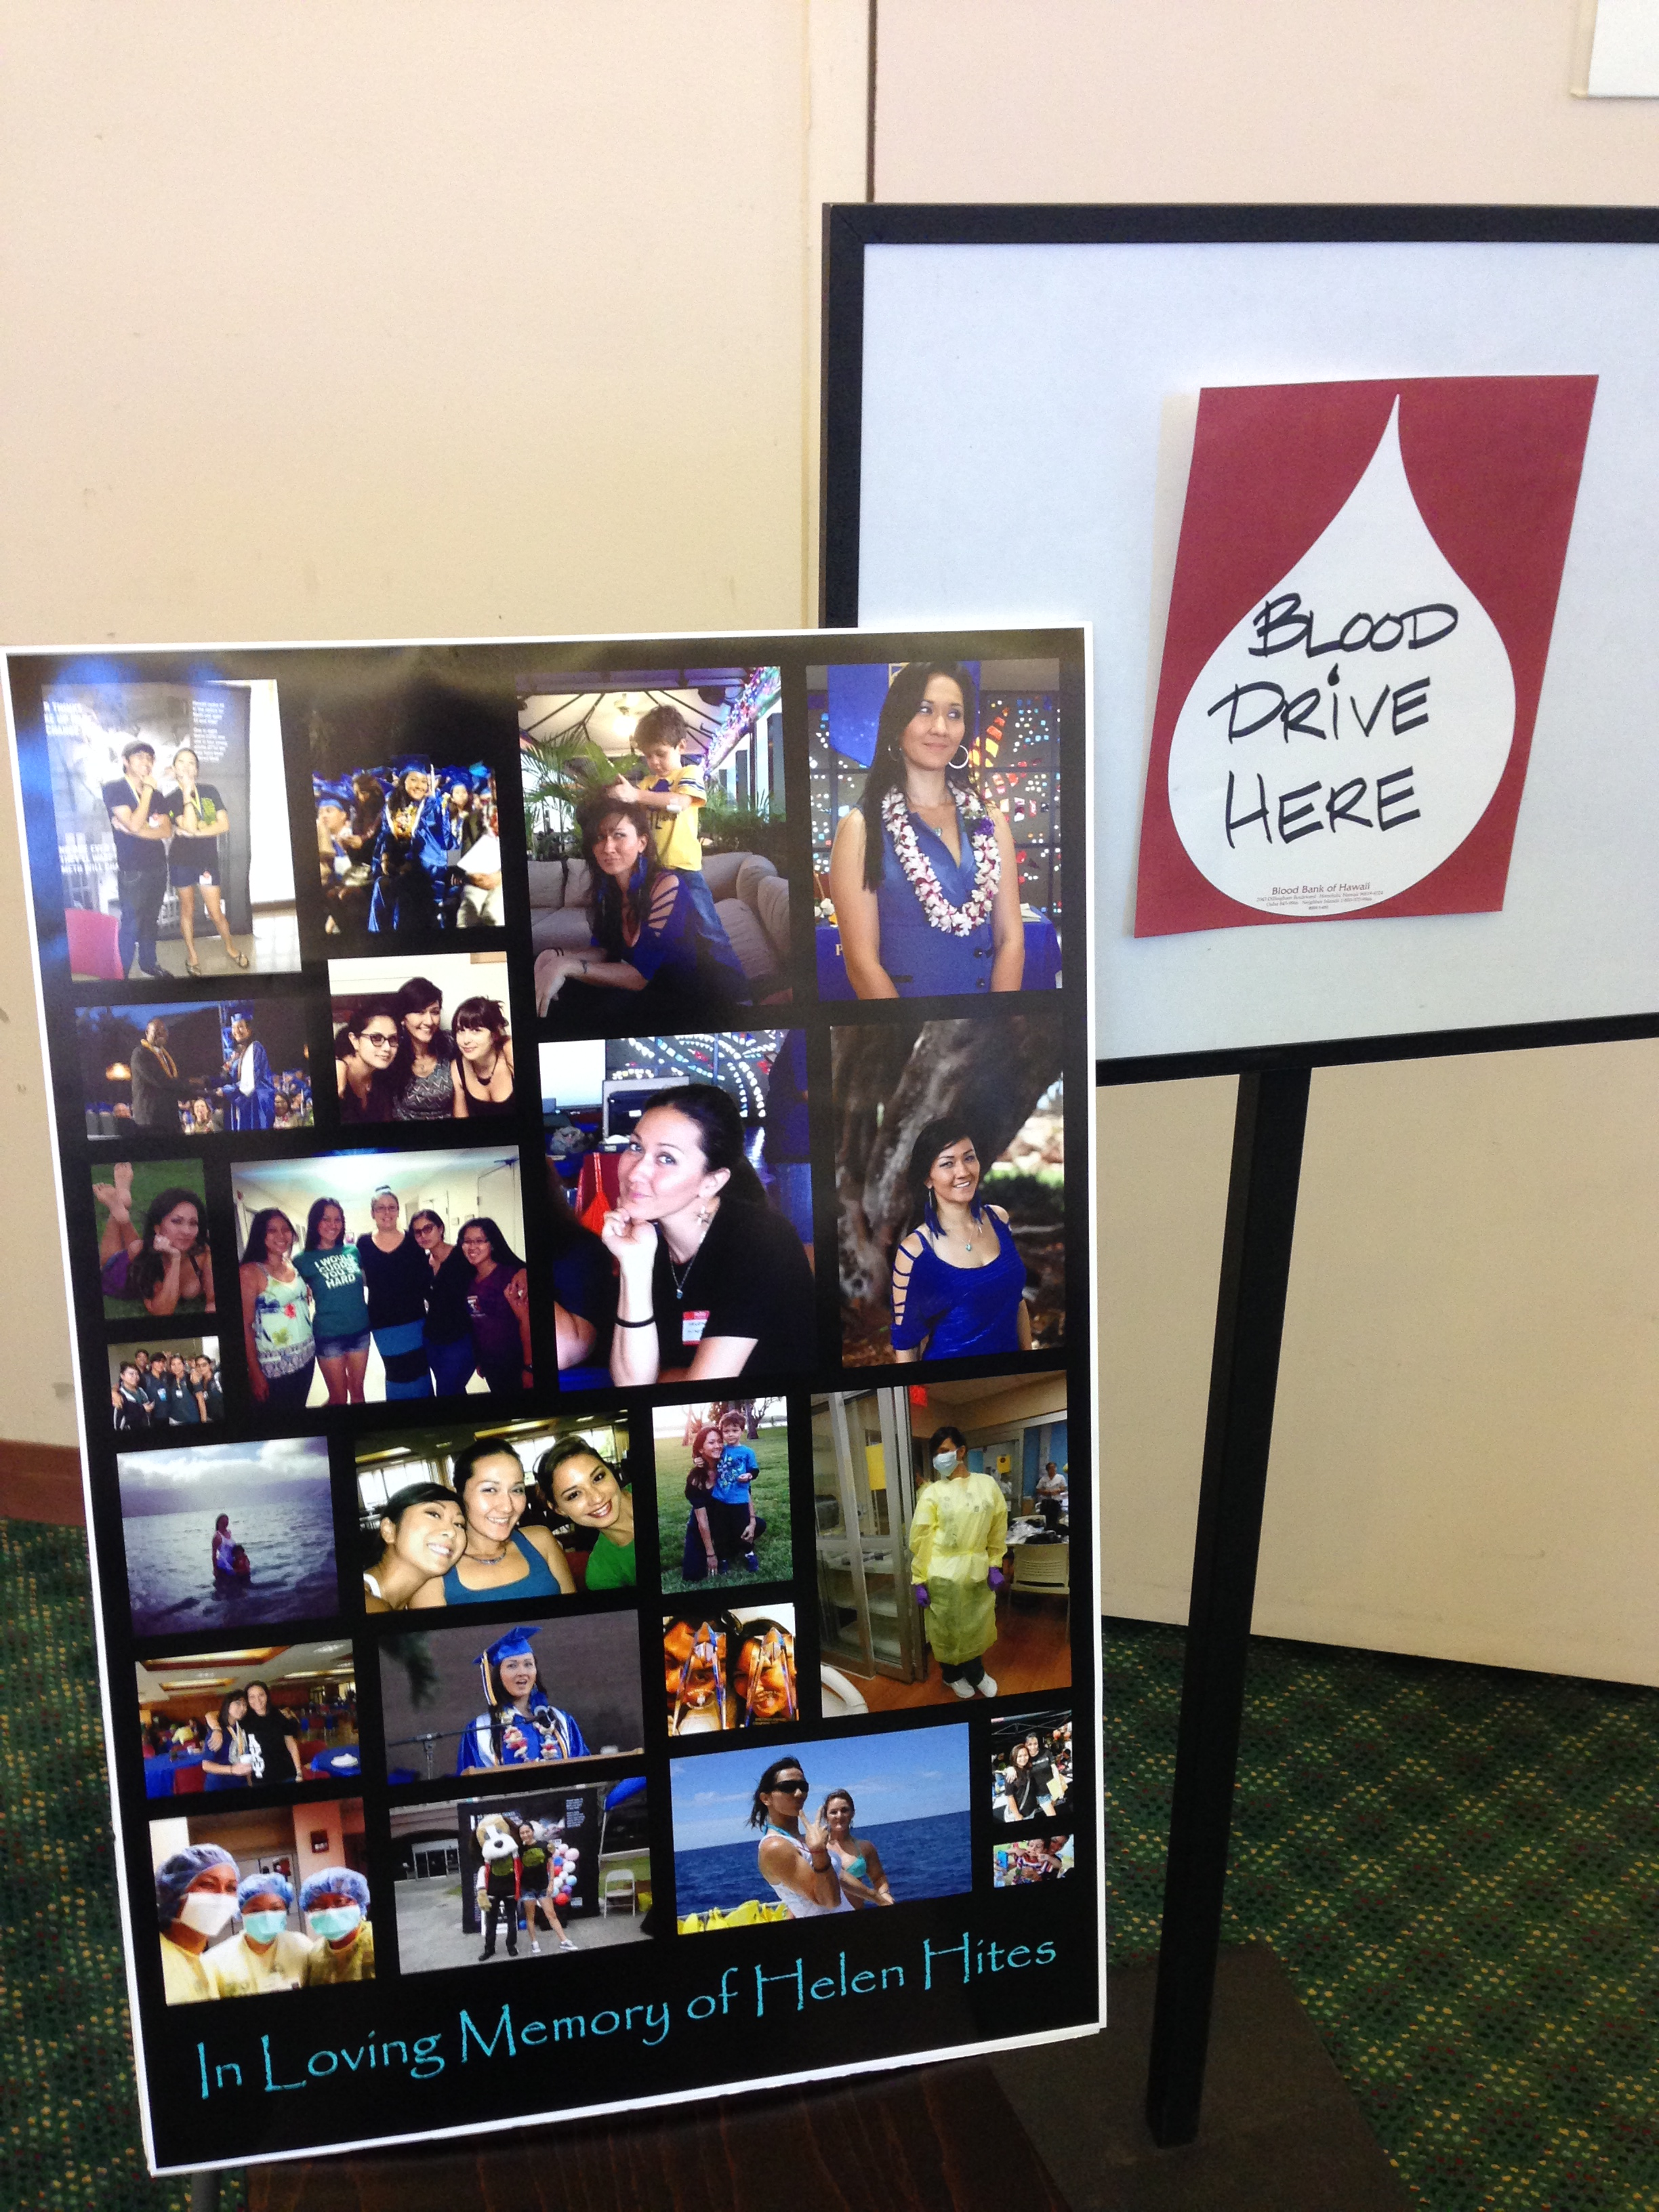 blood drive poster in memory of Helen Hites